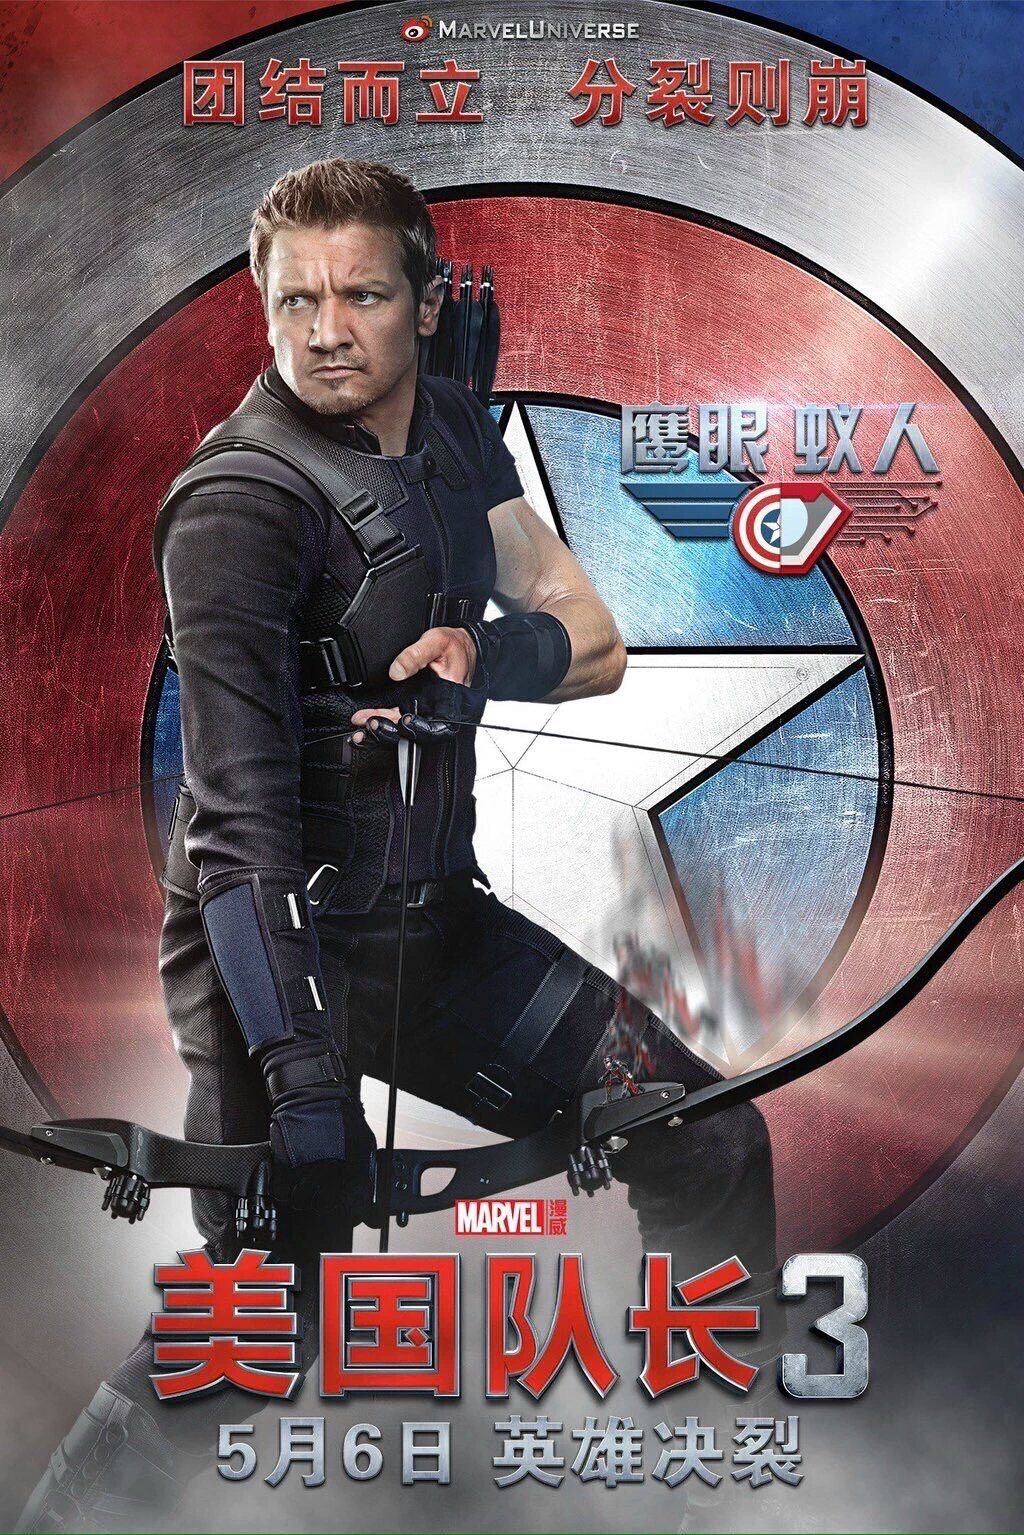 captain america, civil war, hawkeye, clint barton, jeremy renner, international poster